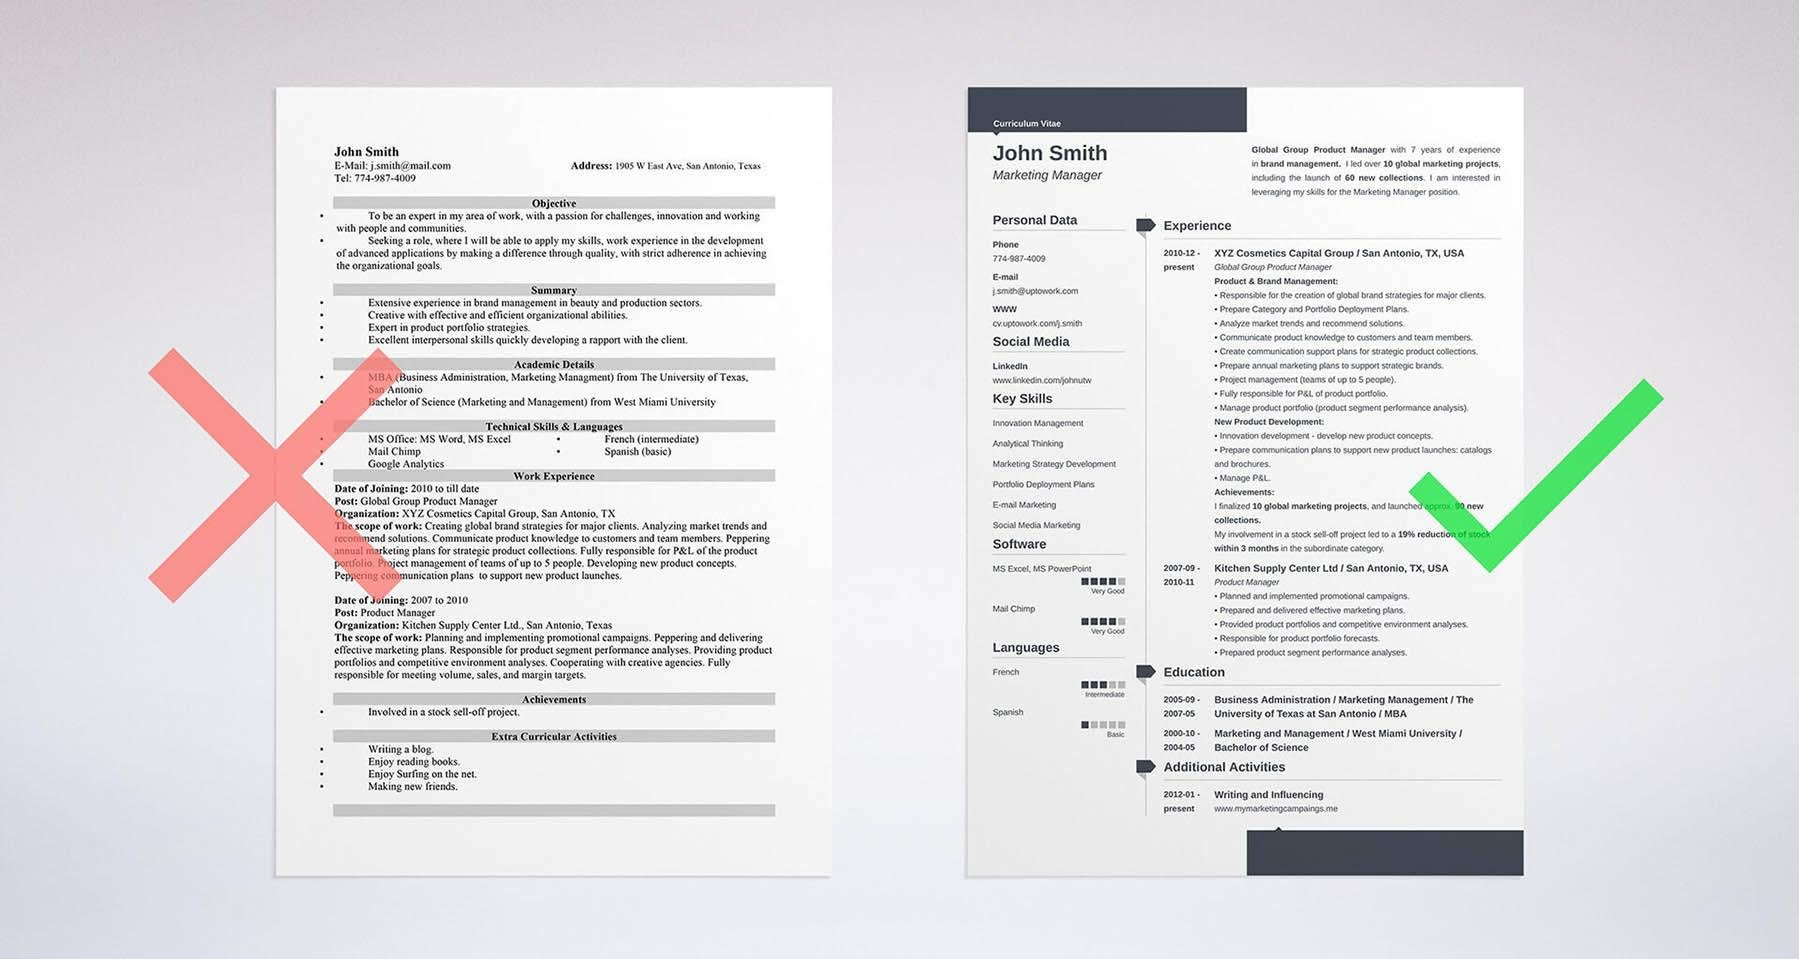 Hereu0027s An Example Of A Template From Our Resume Builder That Properly  Showcases Skills On A Resume.  List Of Skills And Abilities For Resume